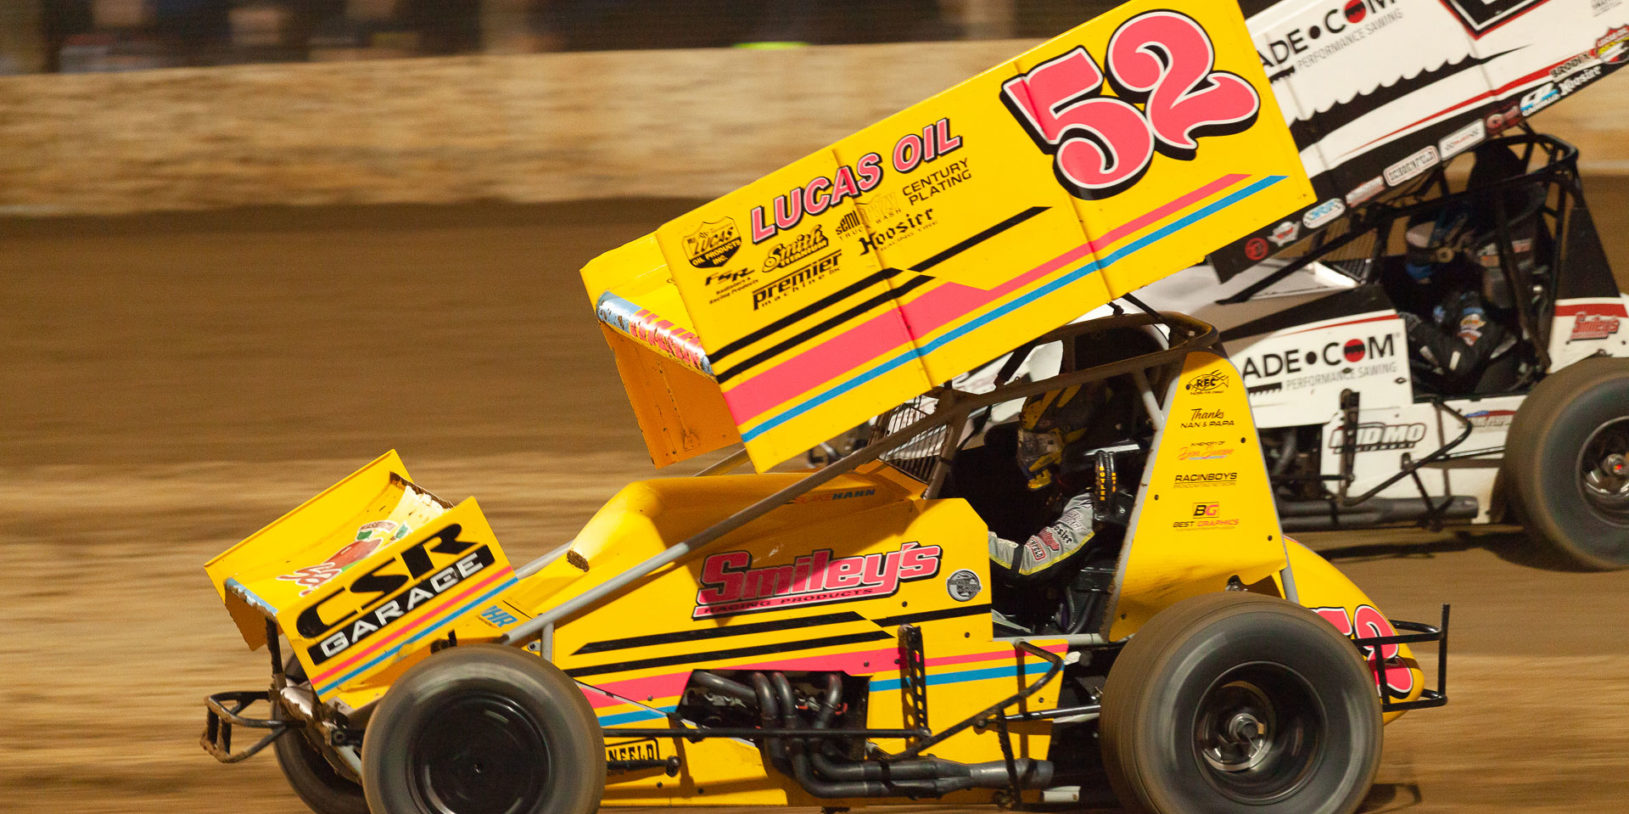 The 52 of Blake Hahn goes low through turn 2 and overtakes the 28 of Scott Bogucki during their heat race at Lake Ozark Speedway for the 2021 Memorial Weekend Sprint and Midget Nationals presented by The Drivers Project. ( Jeffrey Turford / TDP )